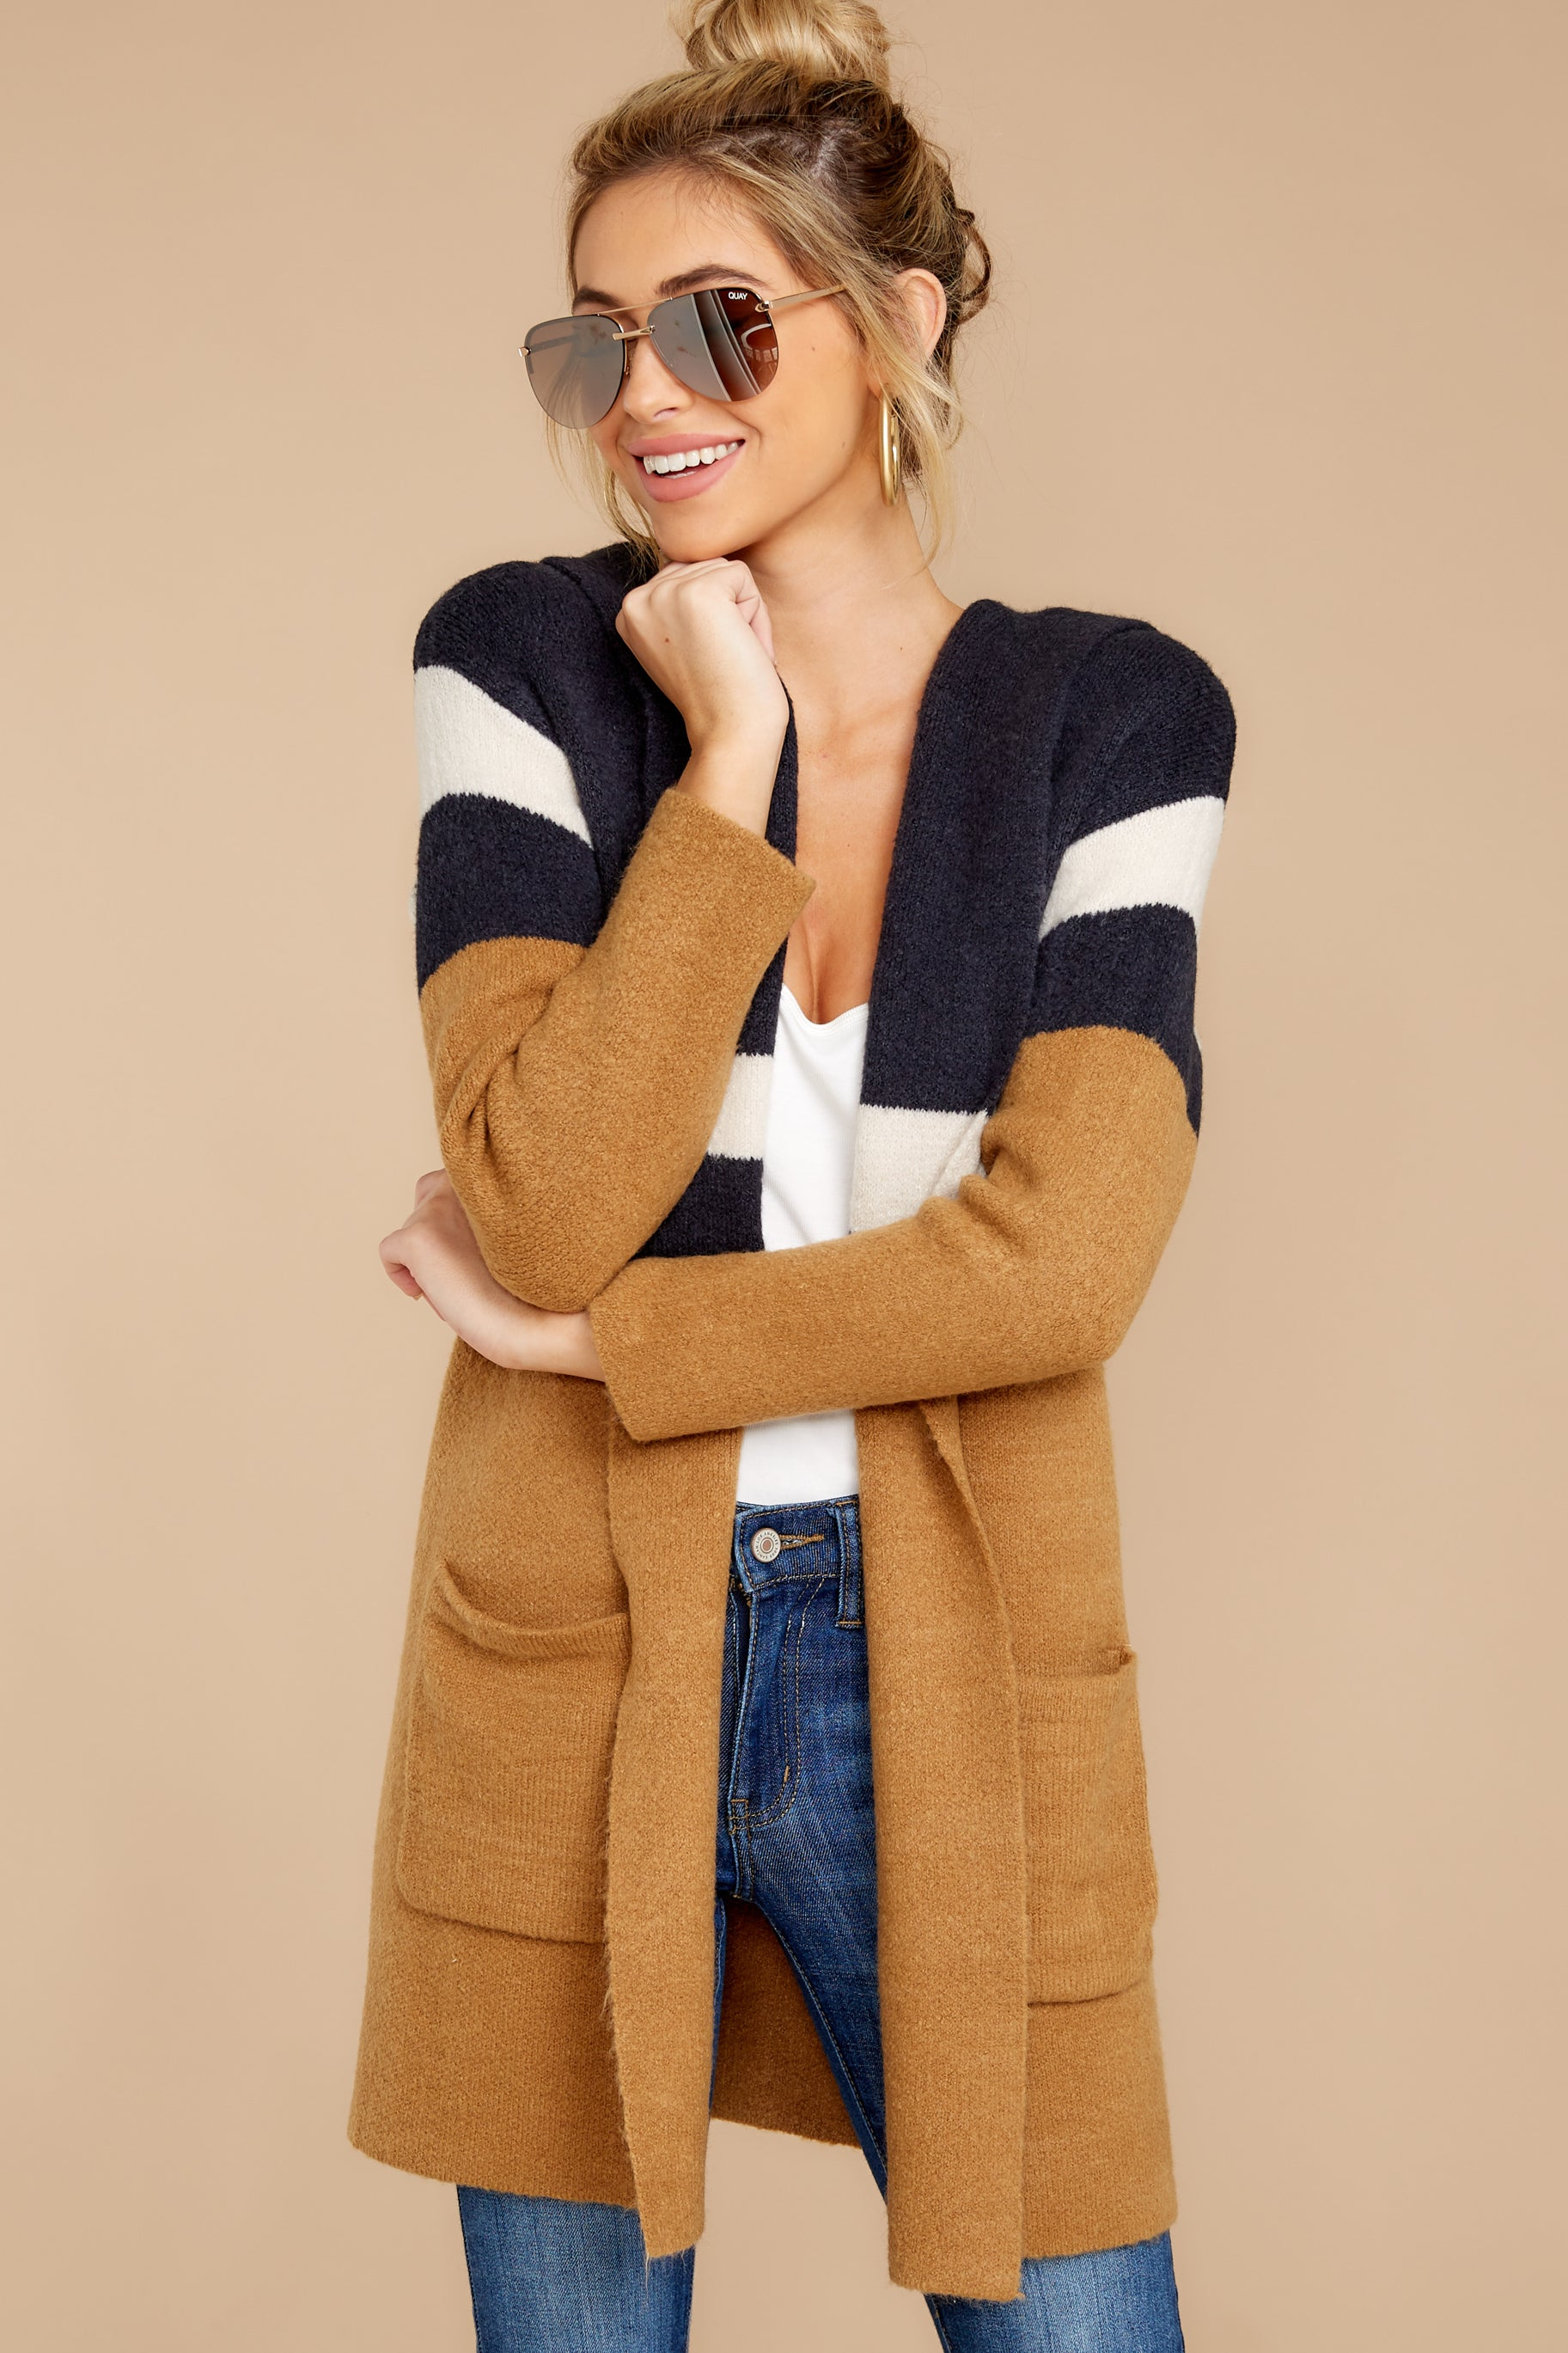 6 Early Morning Camel And Navy Striped Cardigan at reddress.com